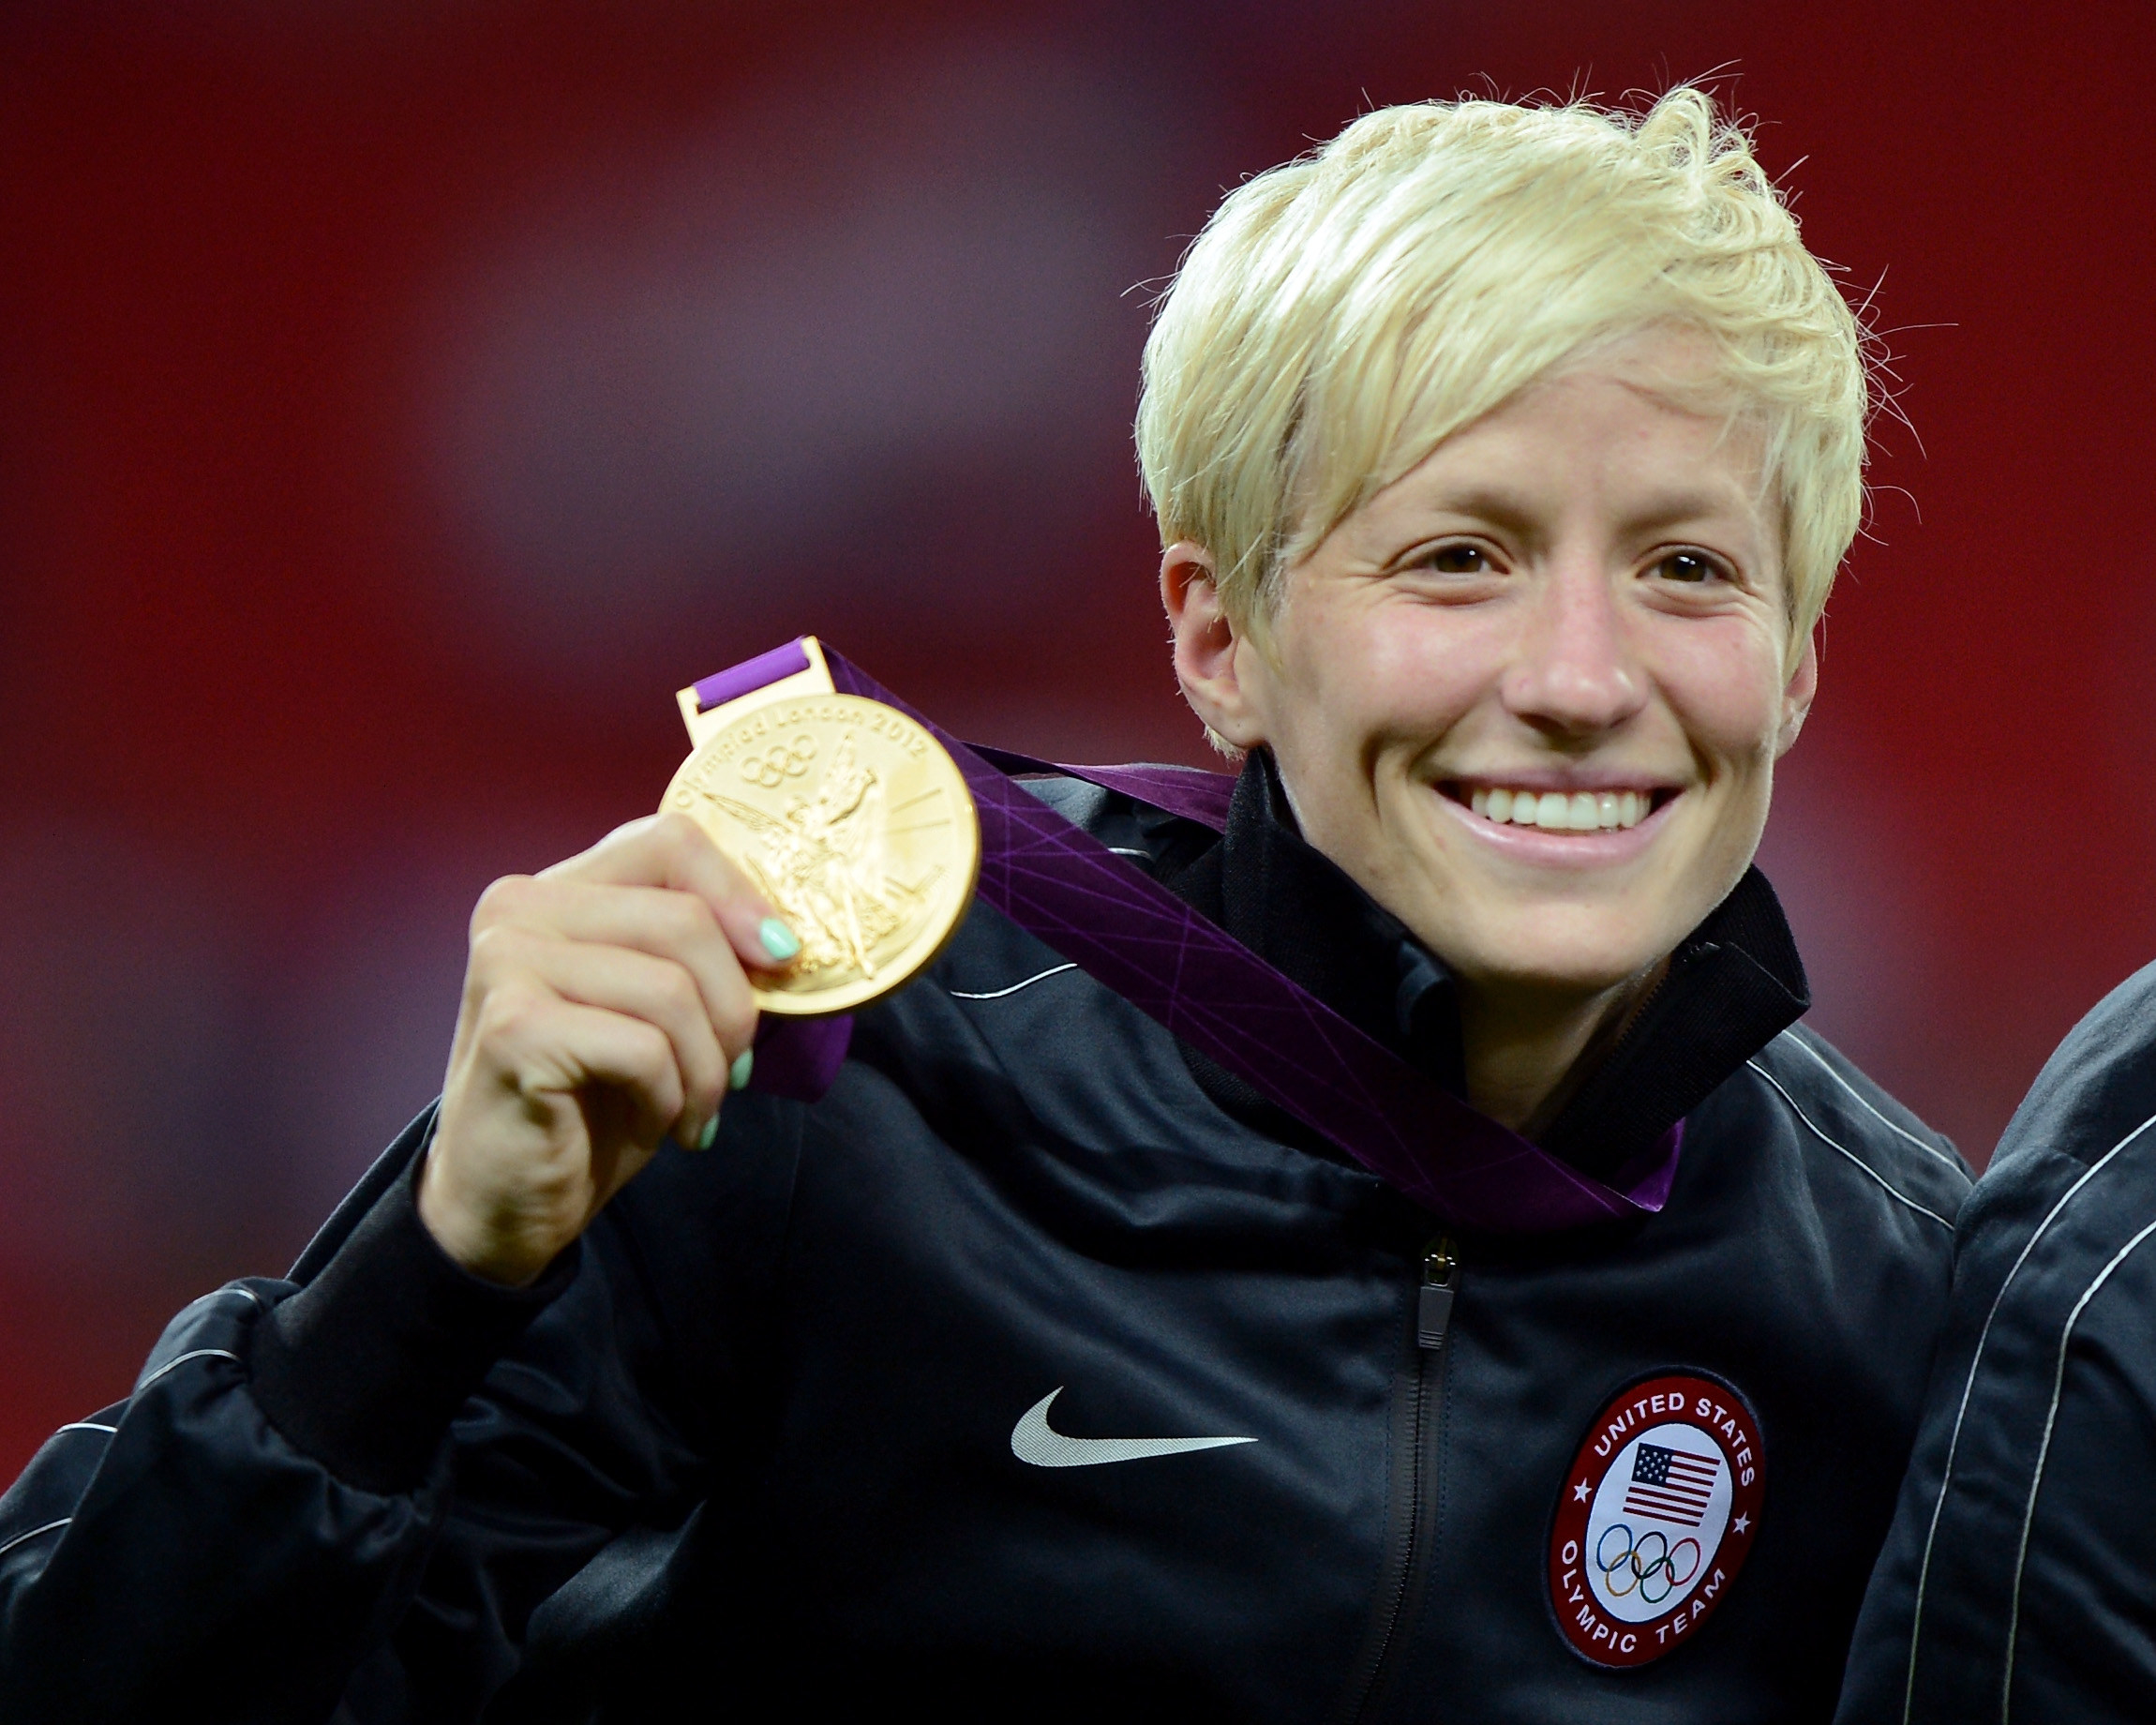 Rapinoe smiling while holding a gold medal